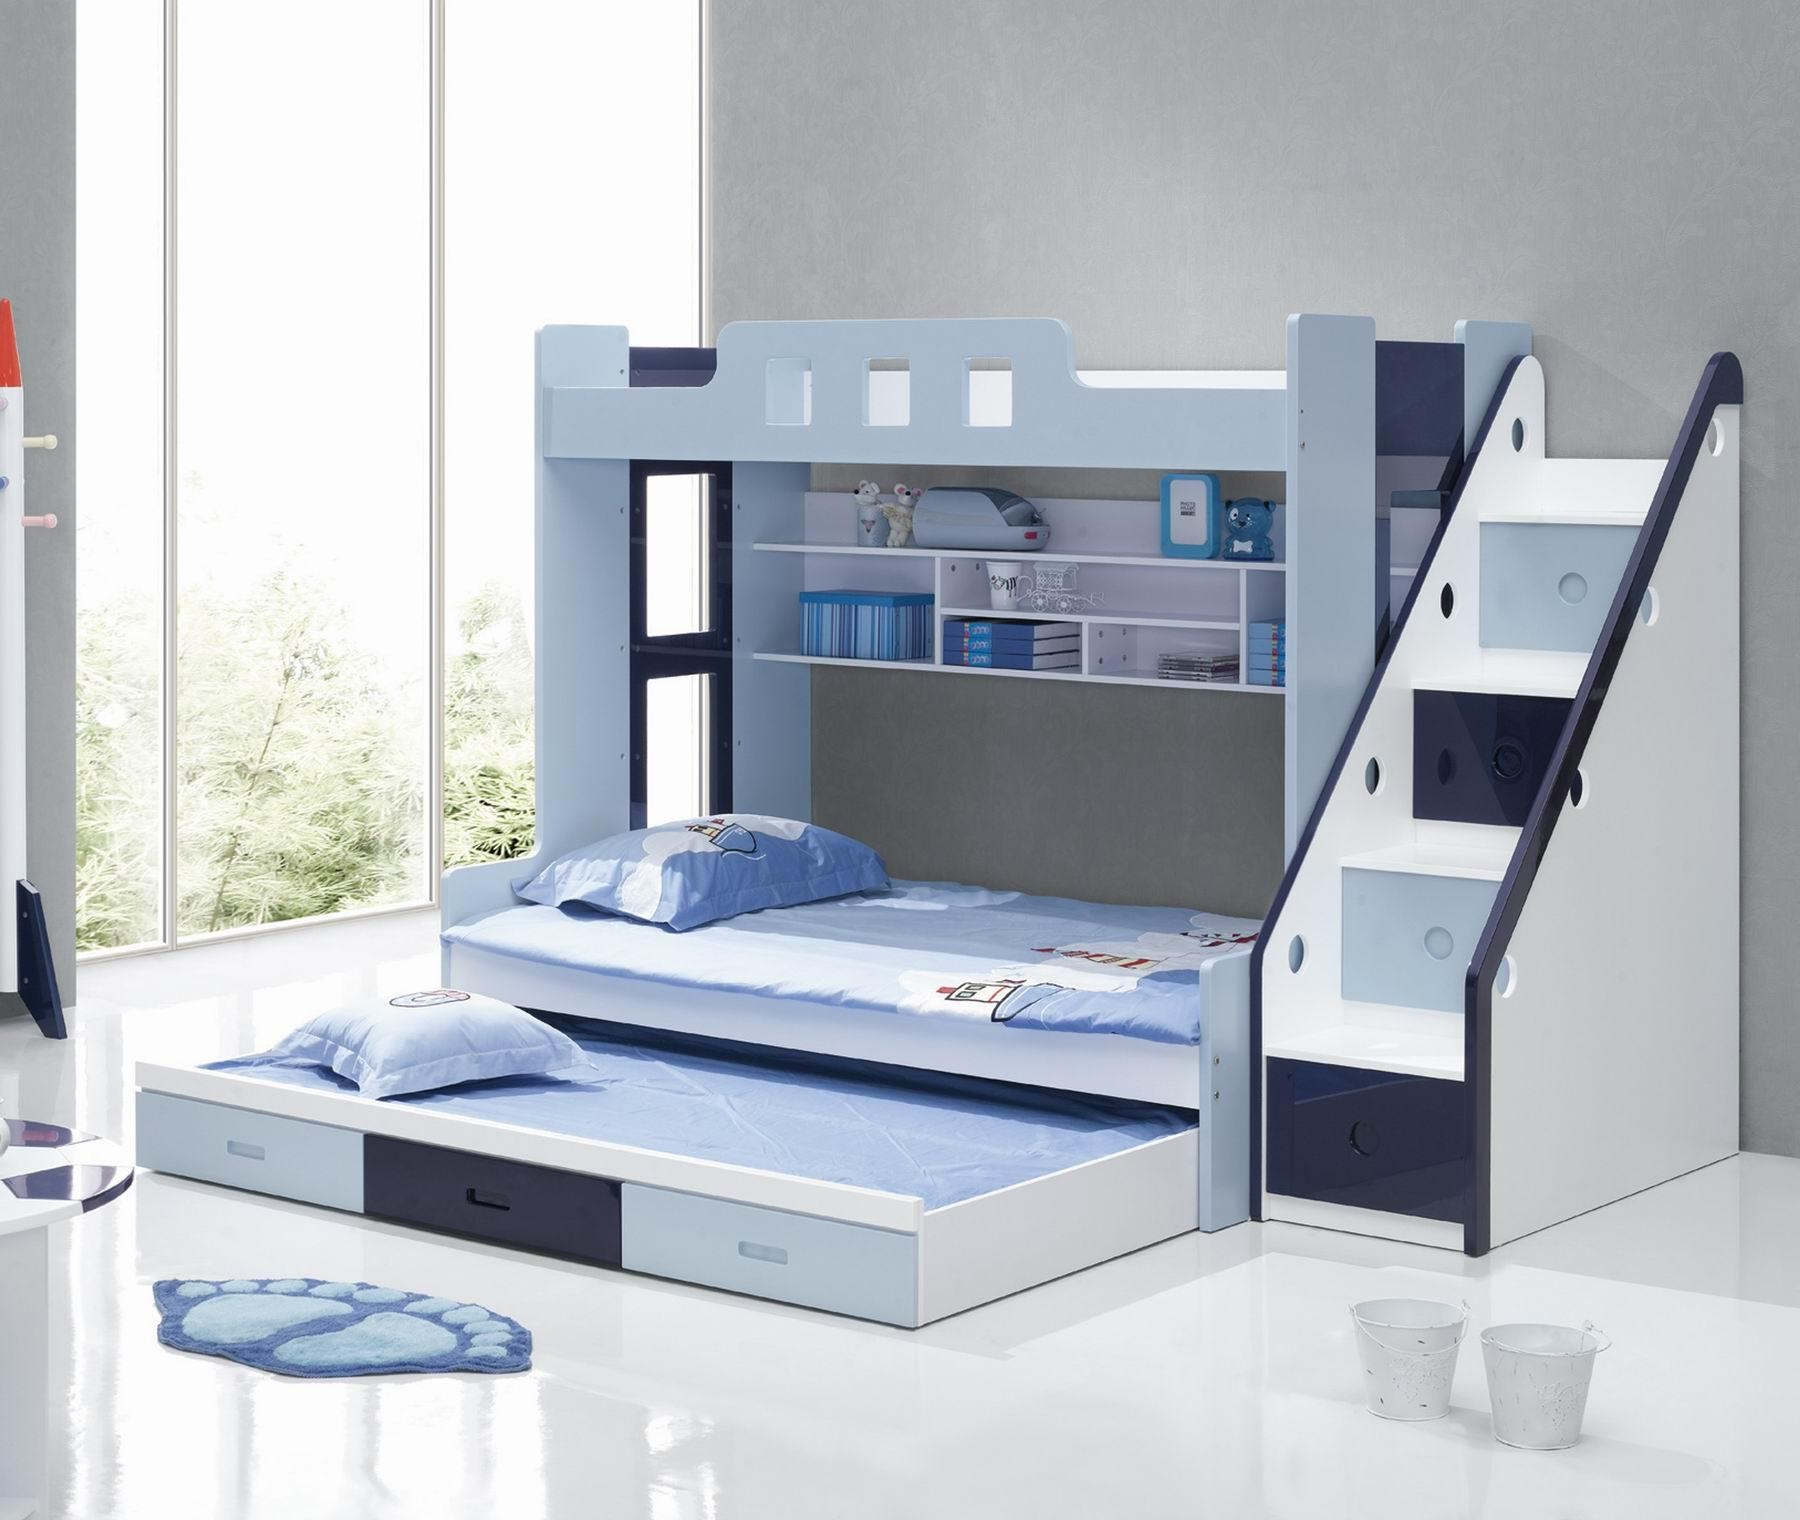 25 Diy Bunk Beds With Plans | Guide Patterns With Bunk Bed With Sofas  Underneath (